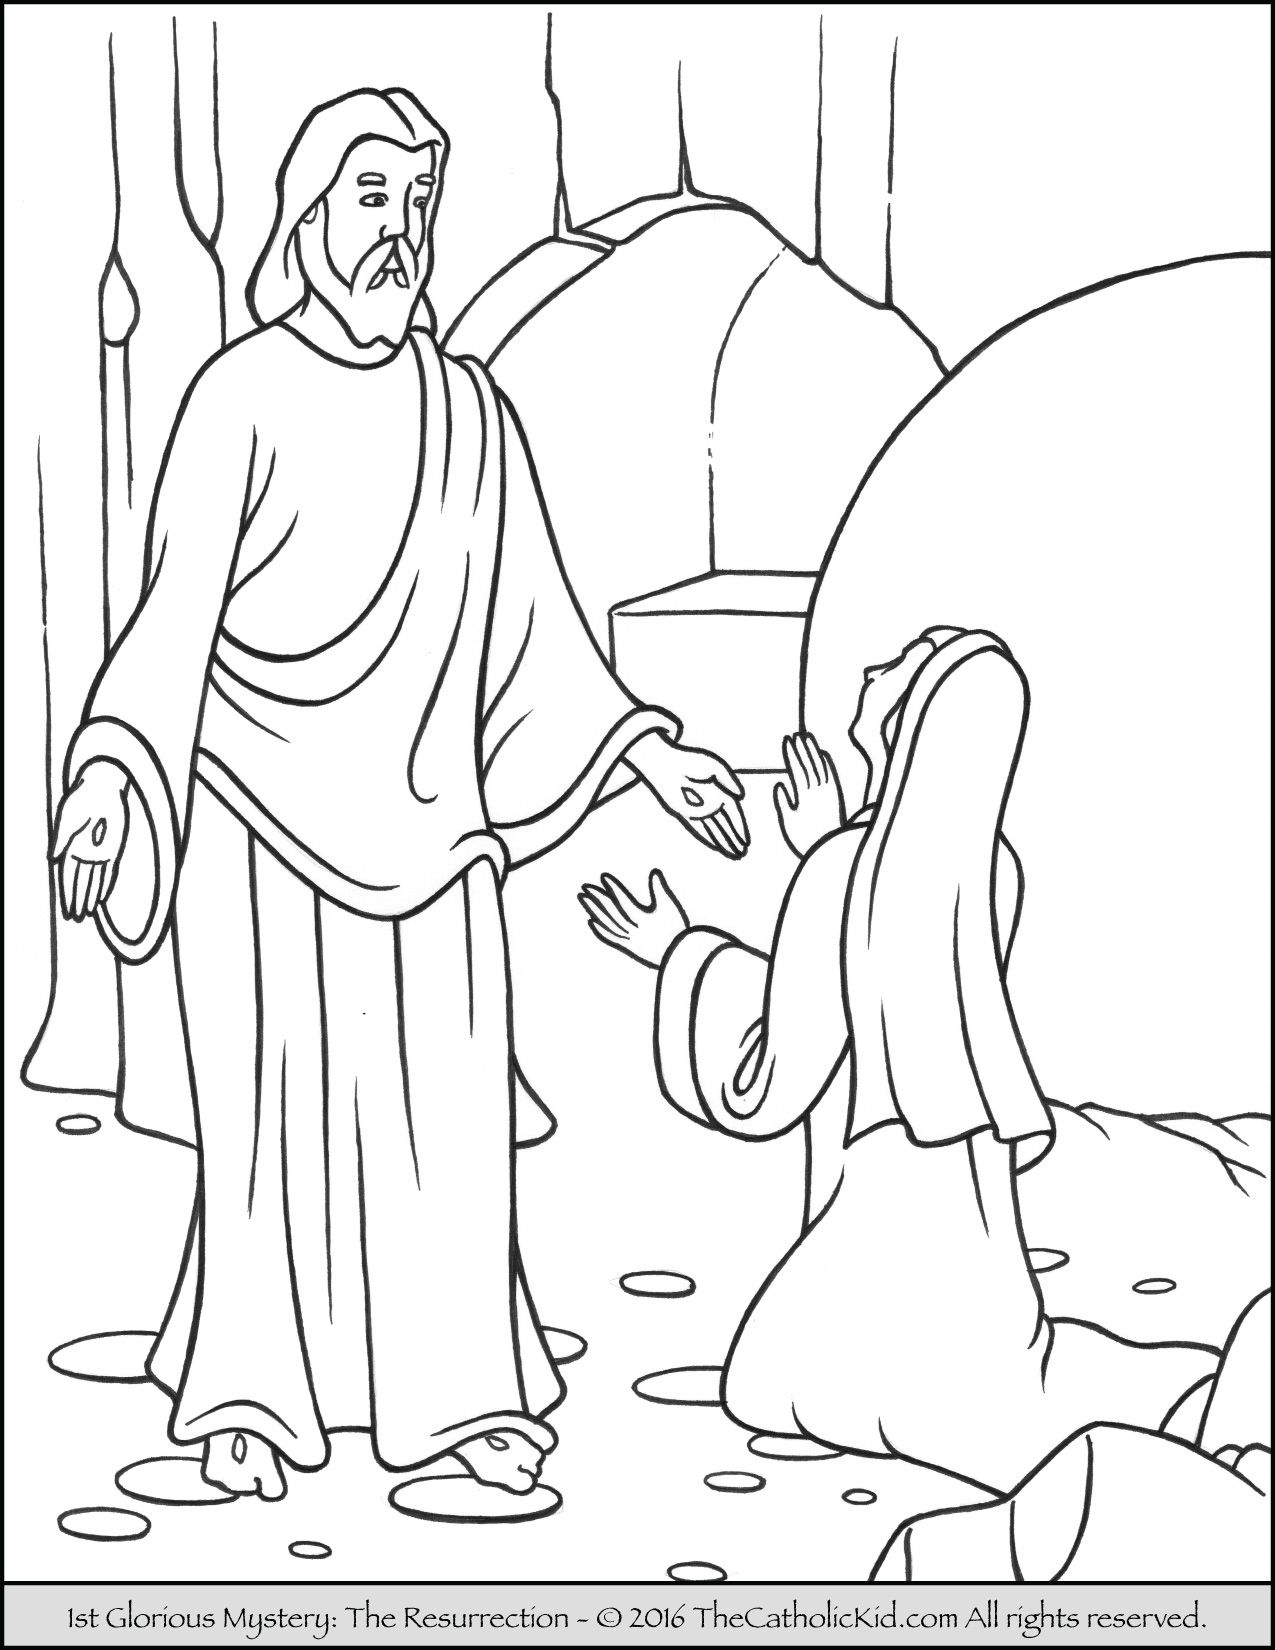 the 1st glorious mystery coloring page u2013 the resurrection jesus